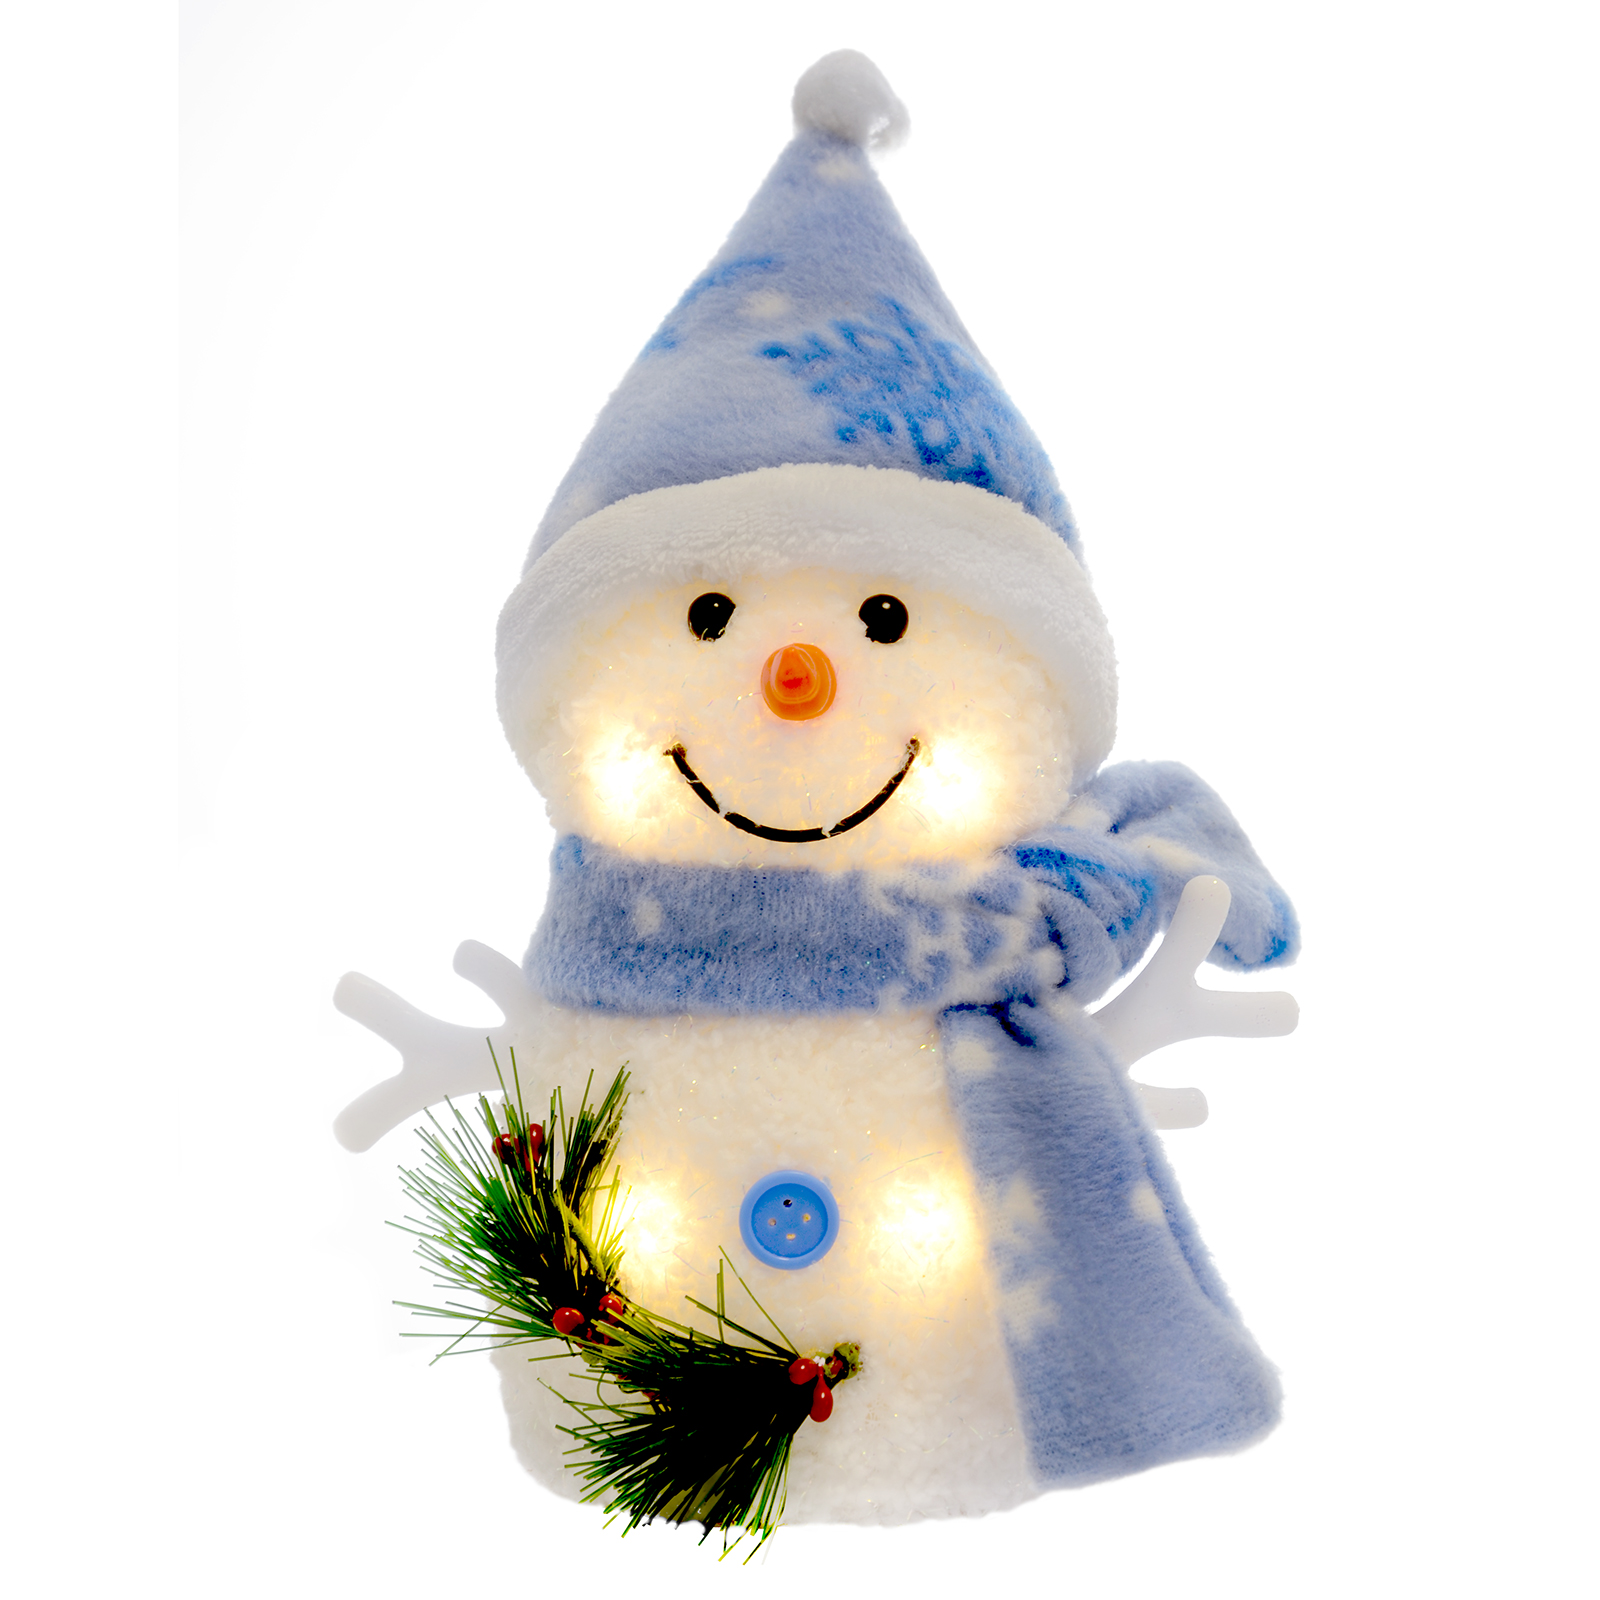 15cm light up snowman with blue snowflake hat scarf for Snowman decorations